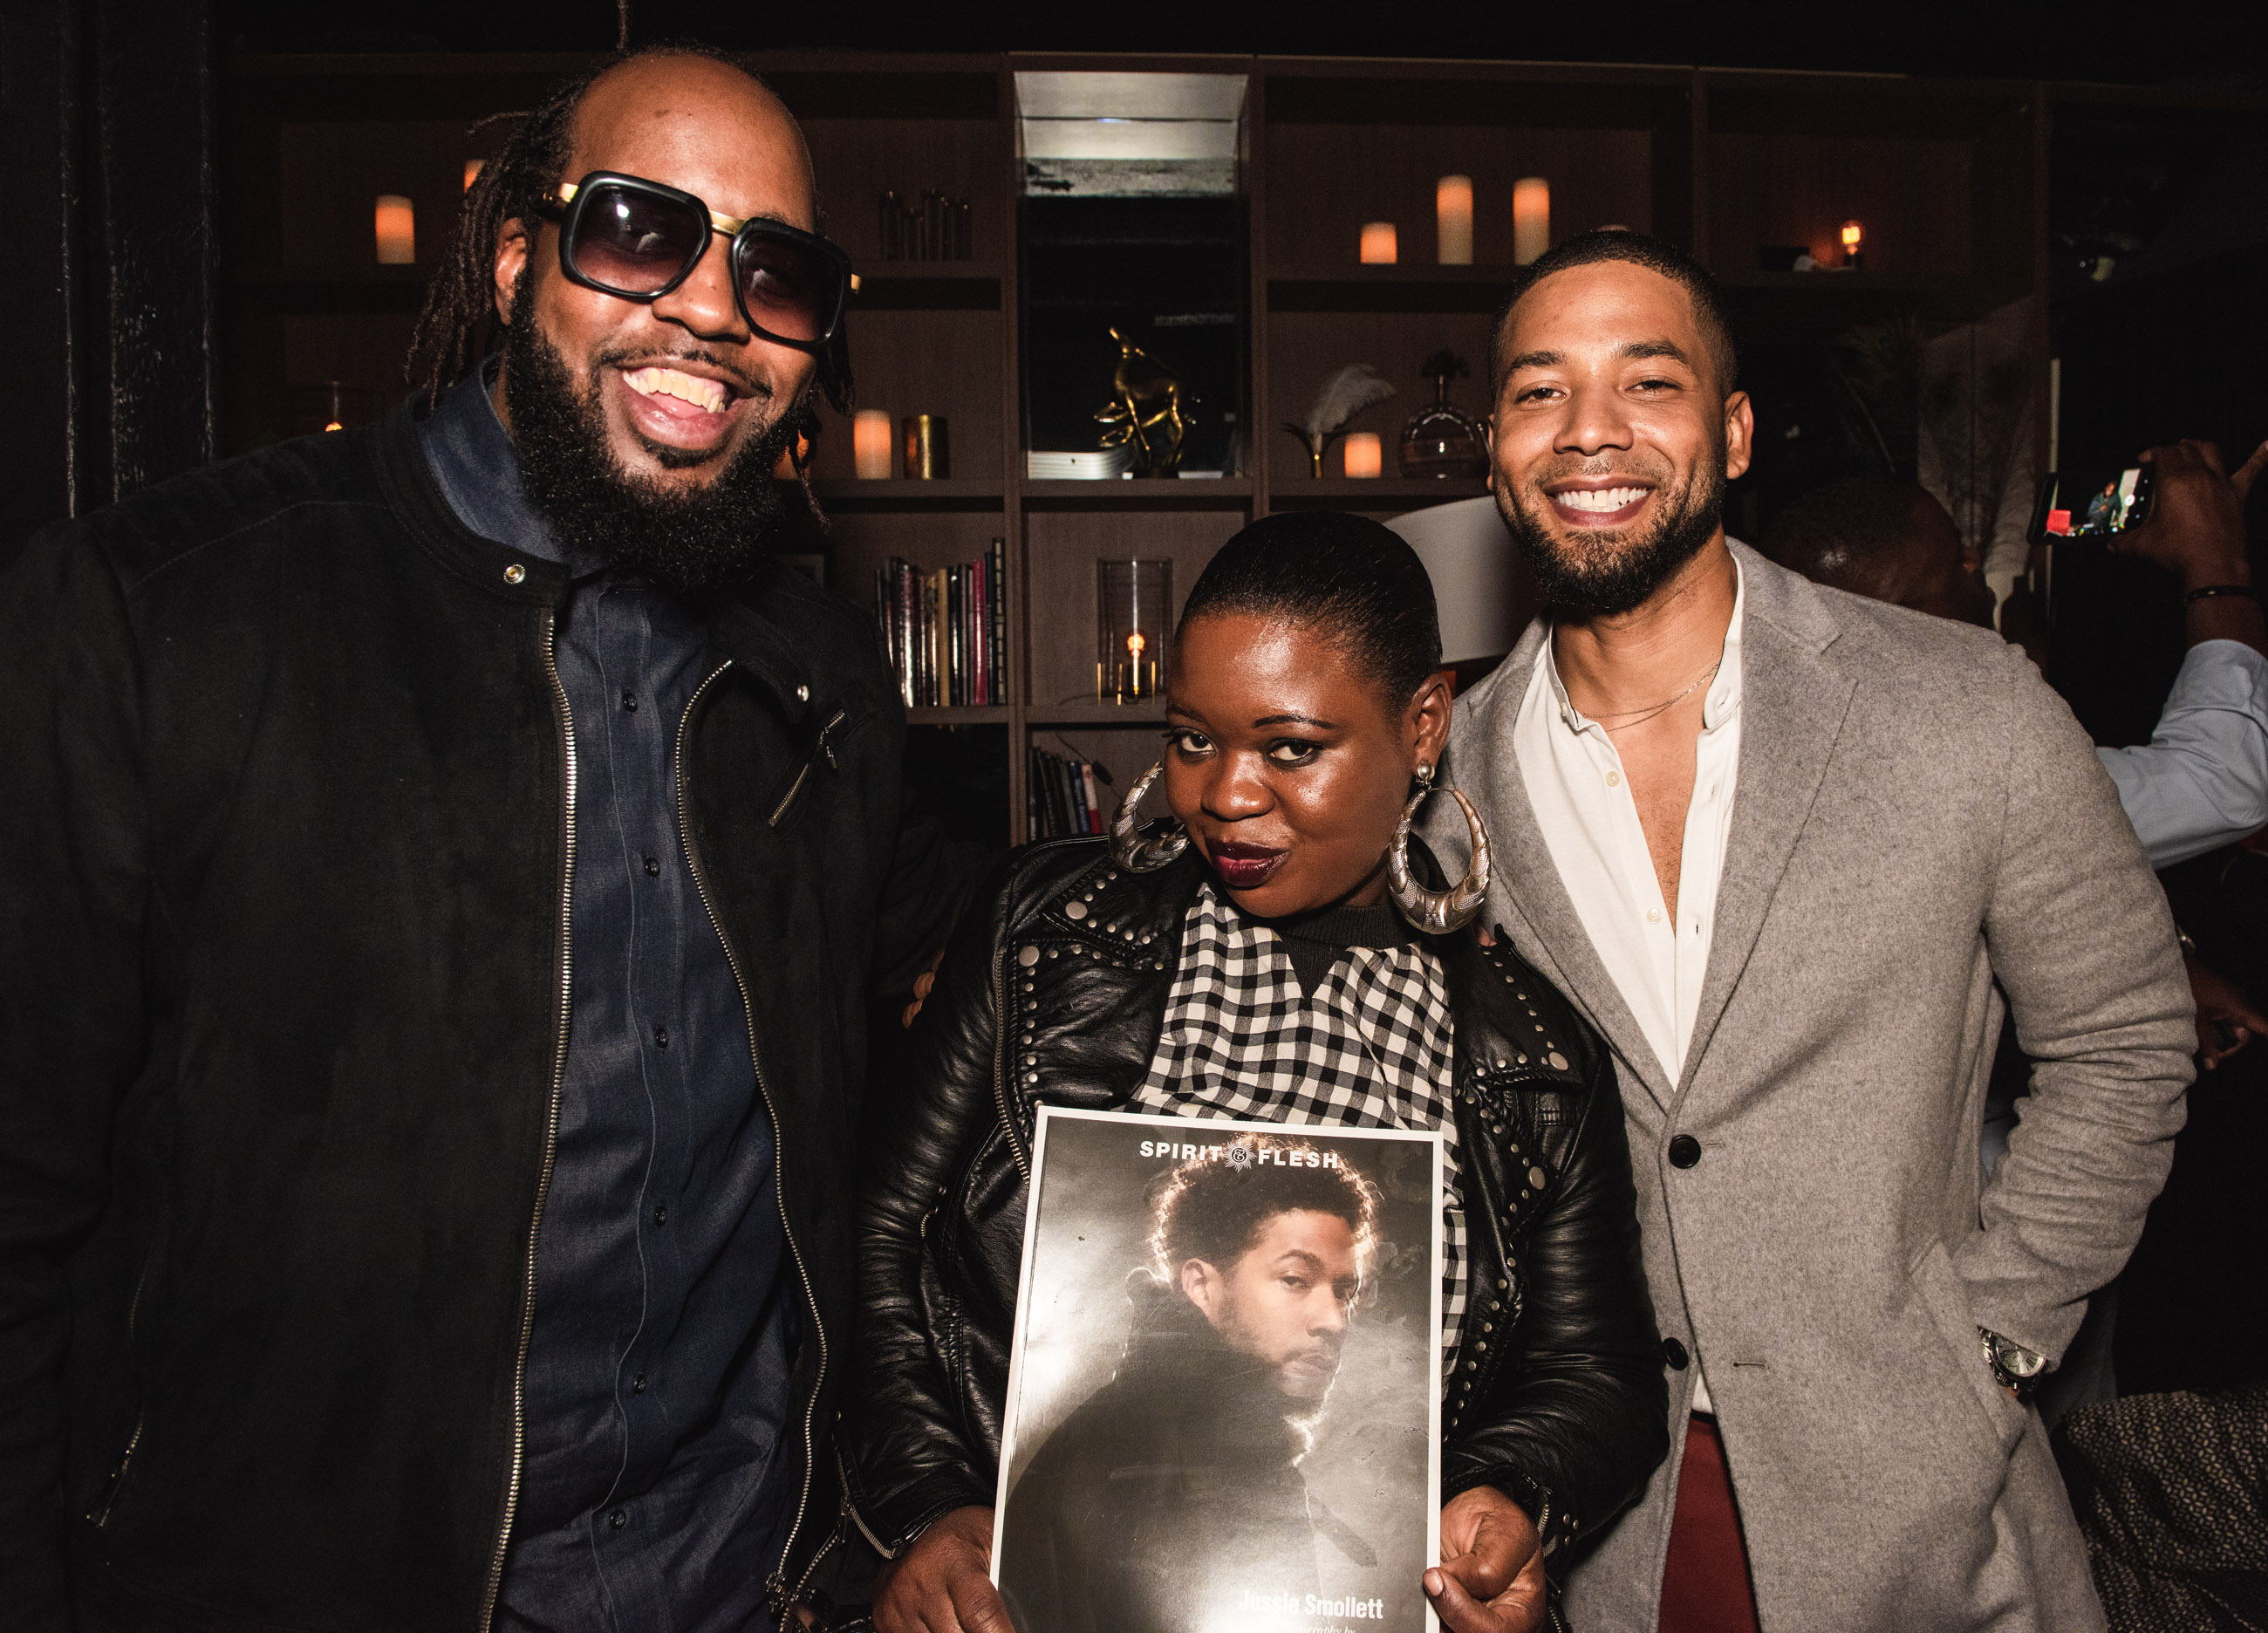 Spirit & Flesh Magazine cover event, MusicMan-Ty & Jussie Smollett by Chuck Marcus